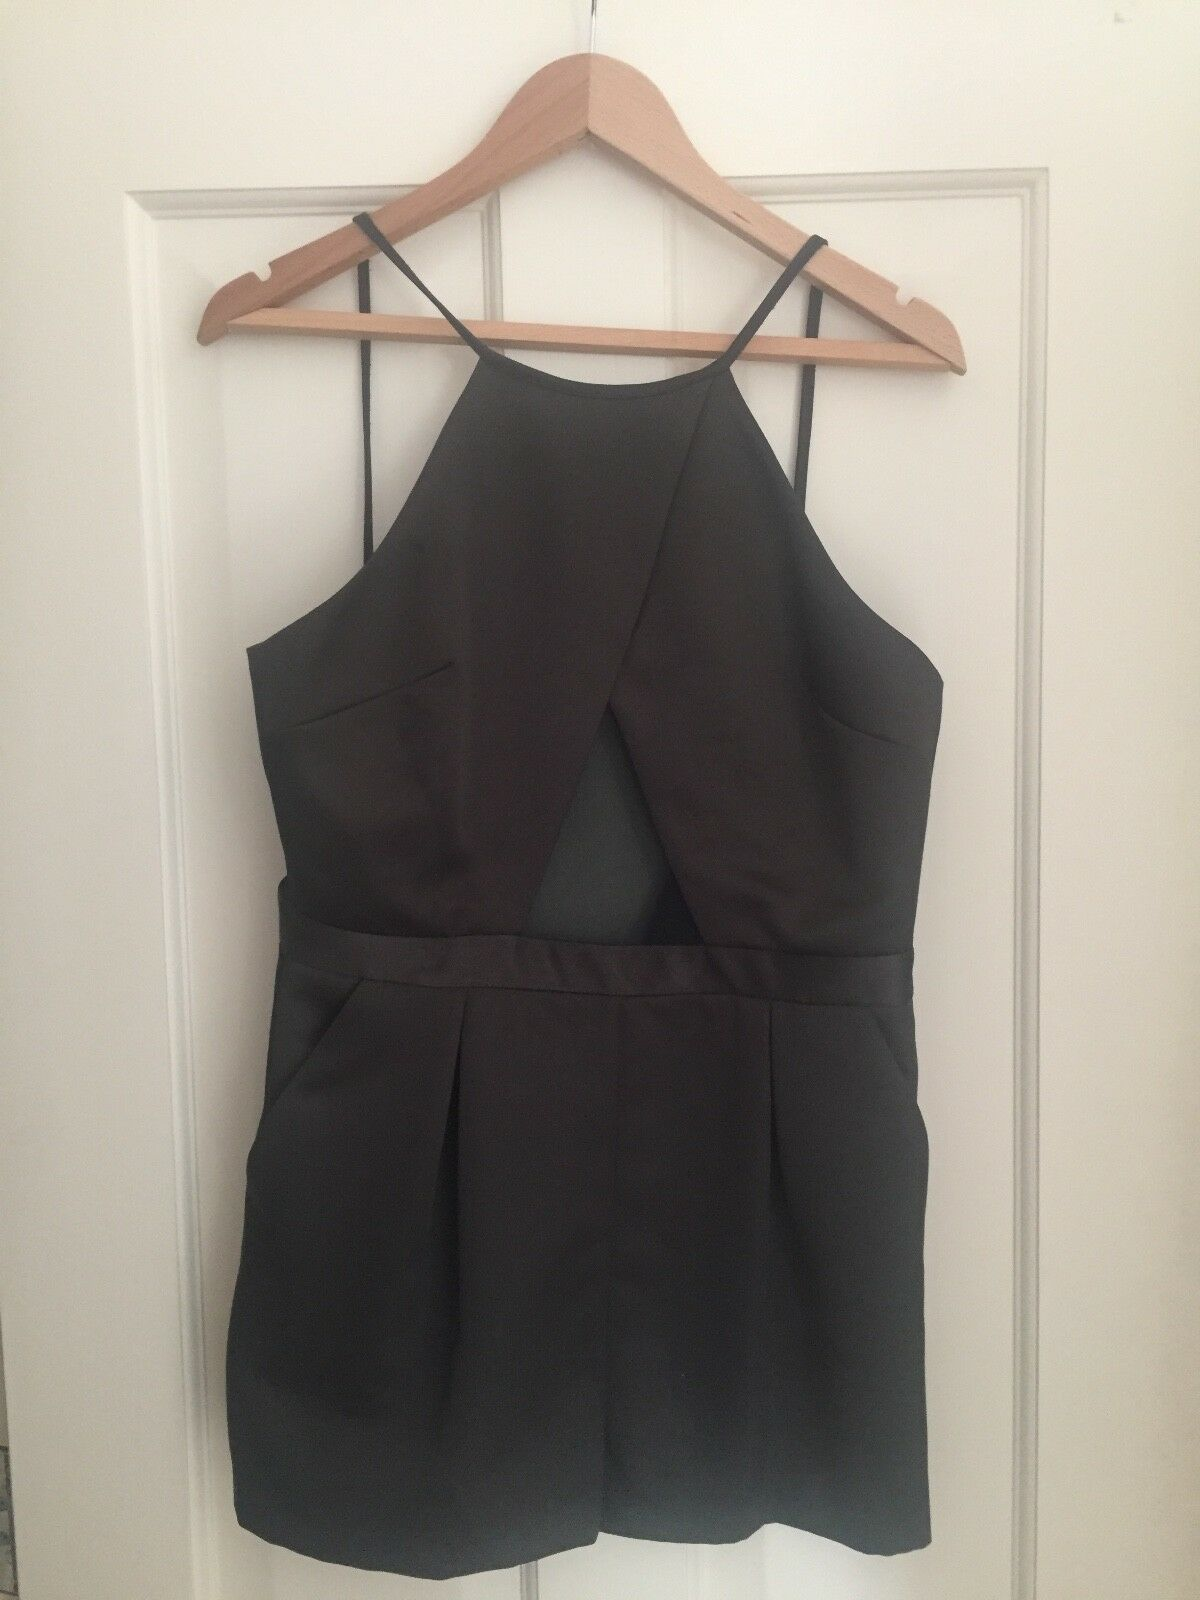 Womens Topshop playsuit, size 10. NEVER WORN - PERFECT CONDITION.